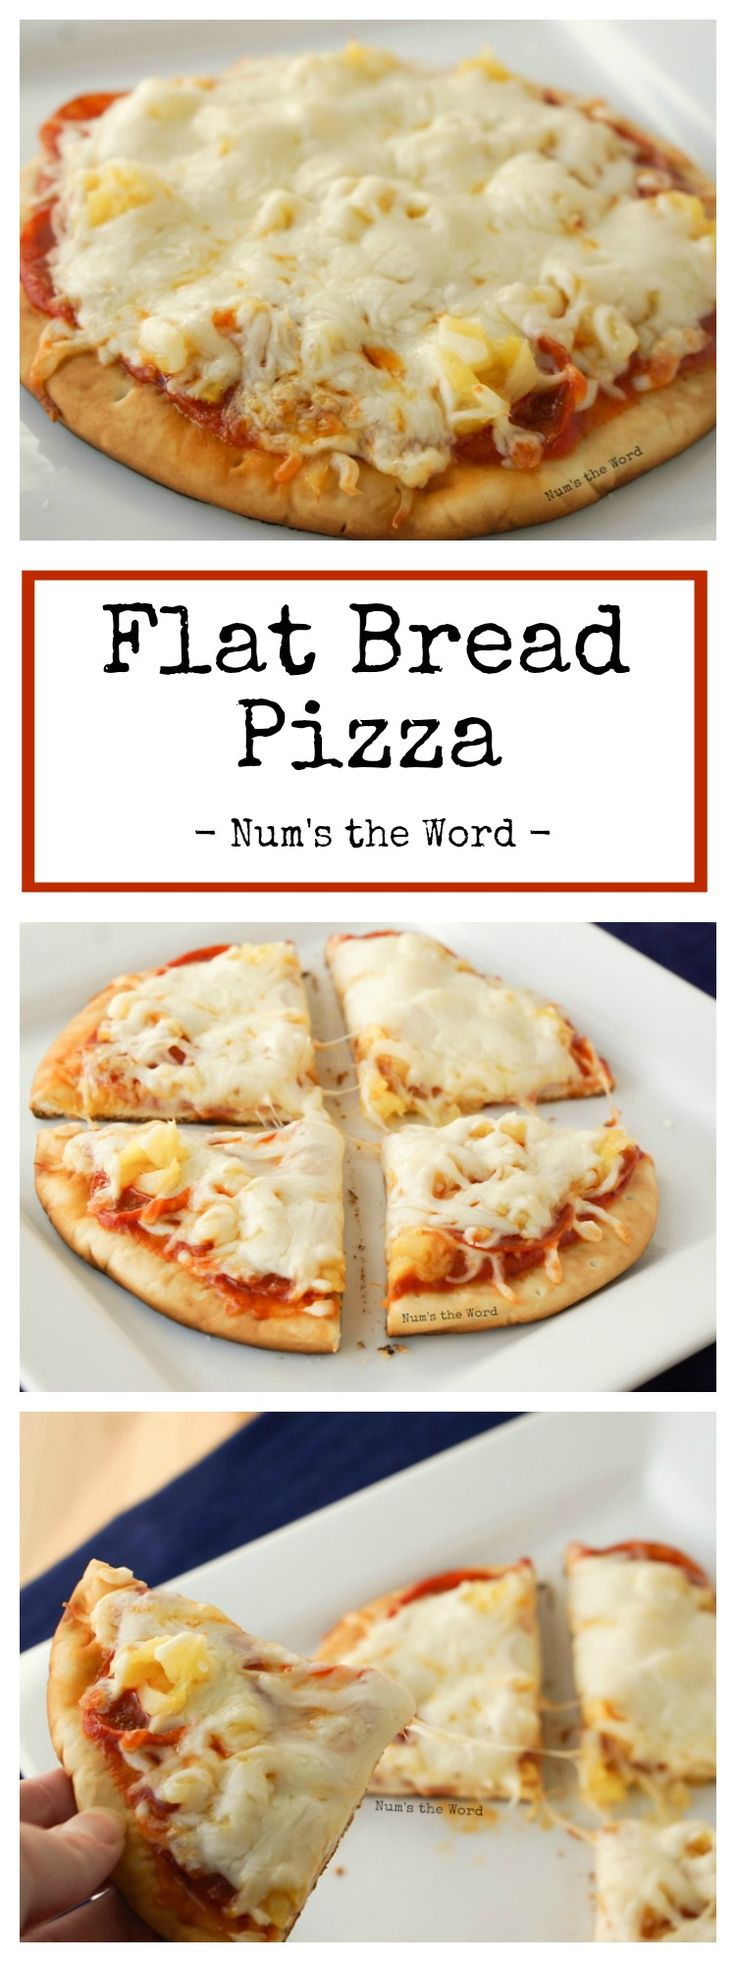 Flat Bread Pizza is an easy 15 minute, kid friendly meal that no one will complain about.  Simple, delicious and oh so tasty!